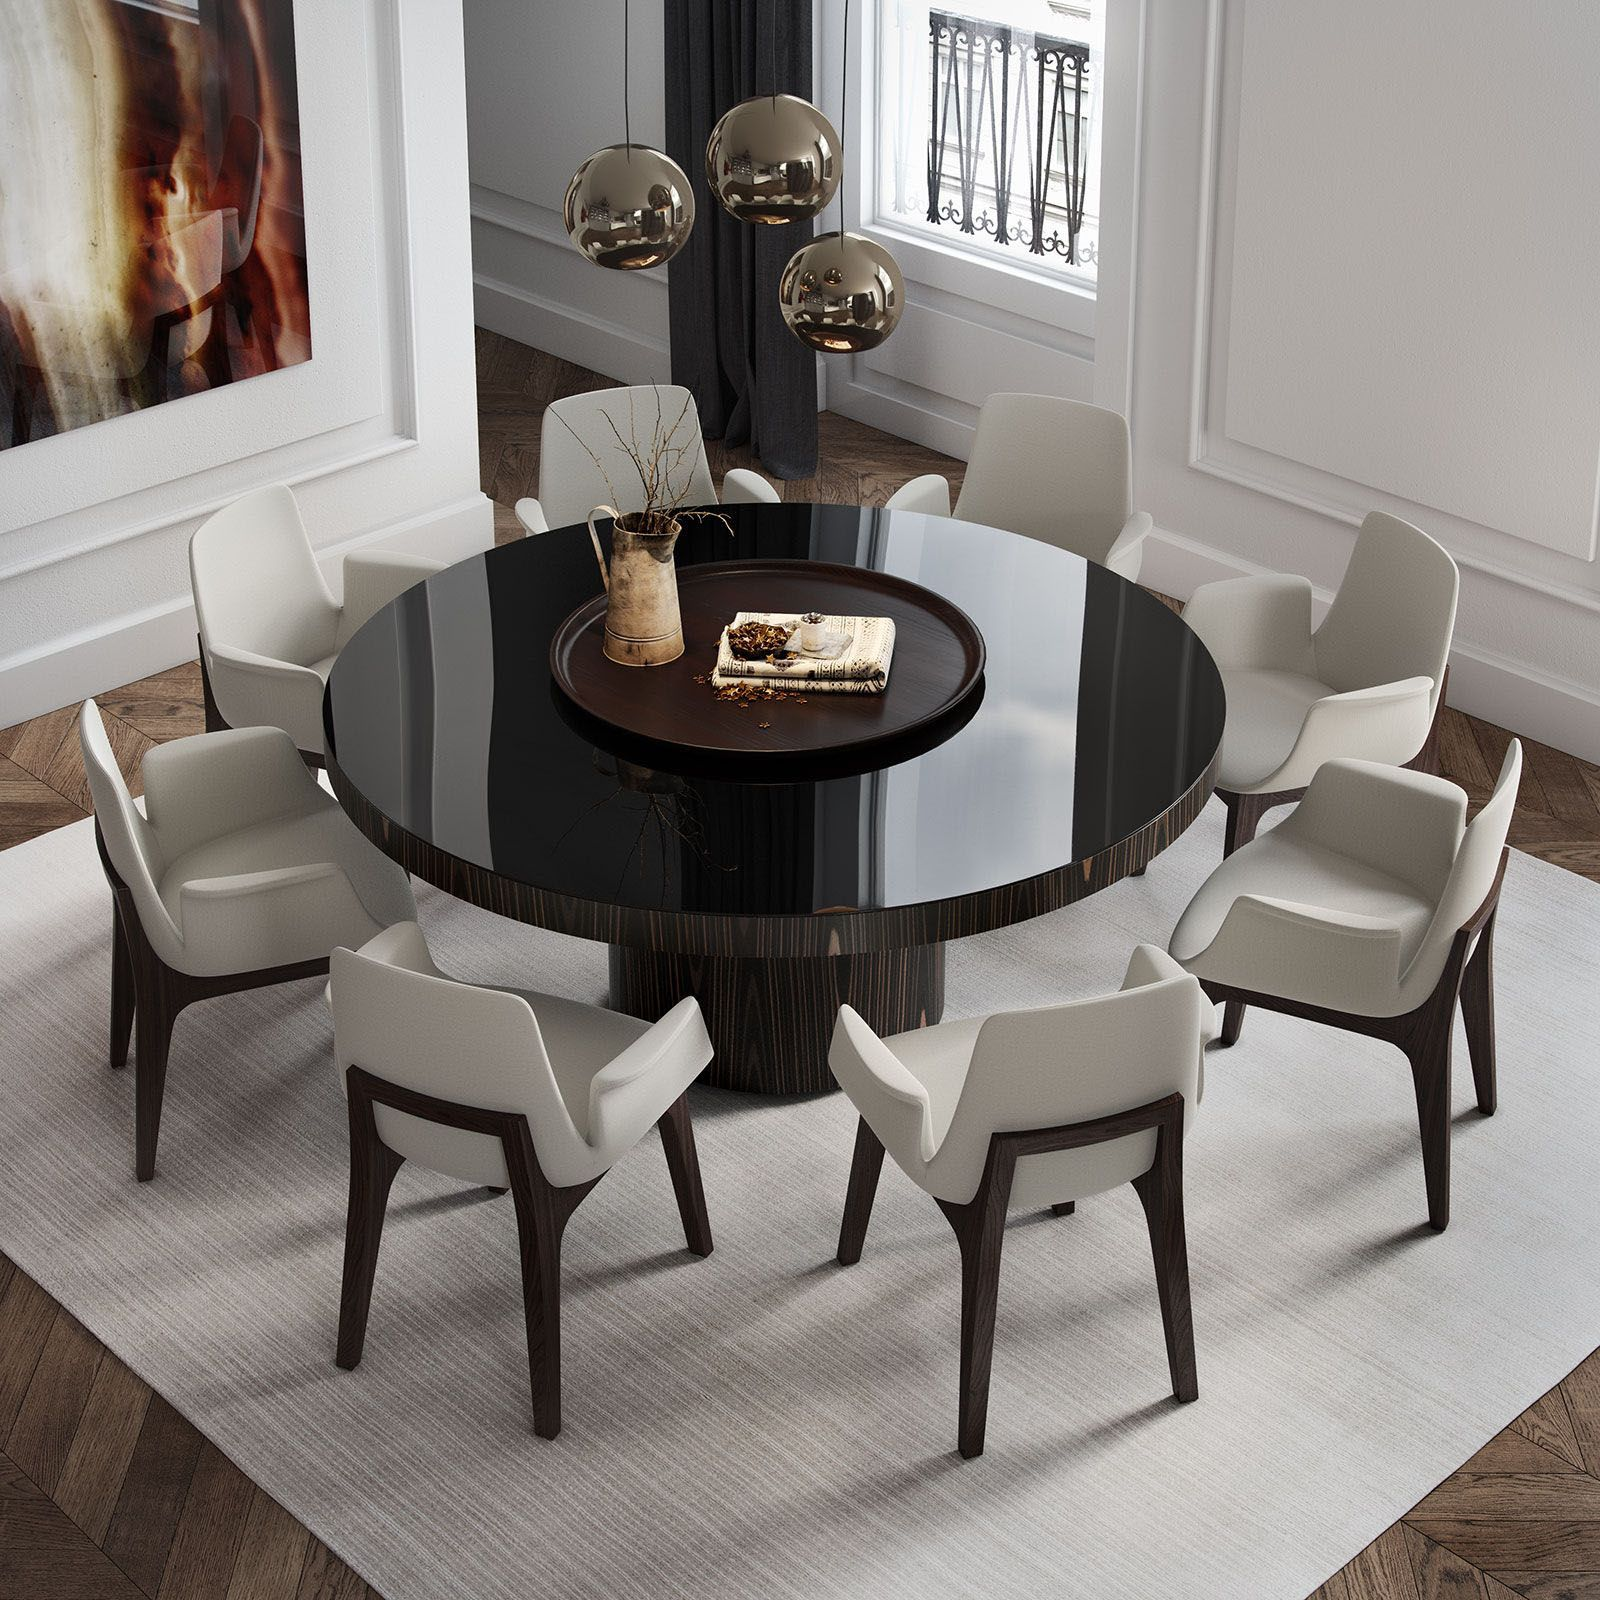 Superb Dining Room Furniture Barrie Ontario Exclusive On